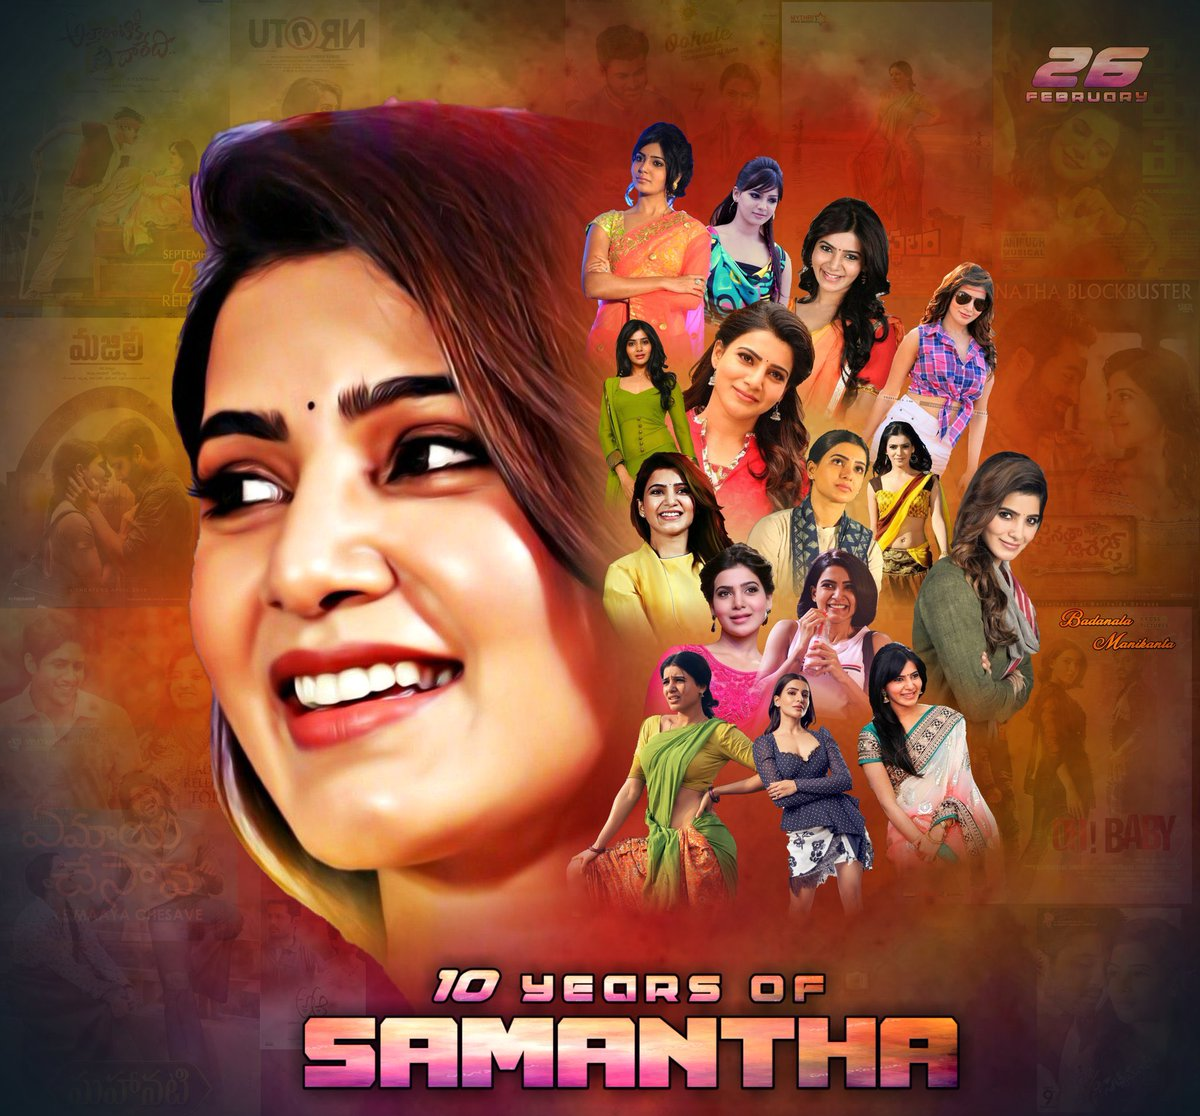 """#10yearsofsamantha  """"WORK HARD in silence. Let your SUCCESS be your Noice."""" These lines suits perfectly for talented actress @Samanthaprabhu2  Glad working with u for #Dookudu #AlluduSeenu & #OhBaby movies. Congratulations on completing 10 yrs in Films💐 #10YearsForSamanthaMania"""